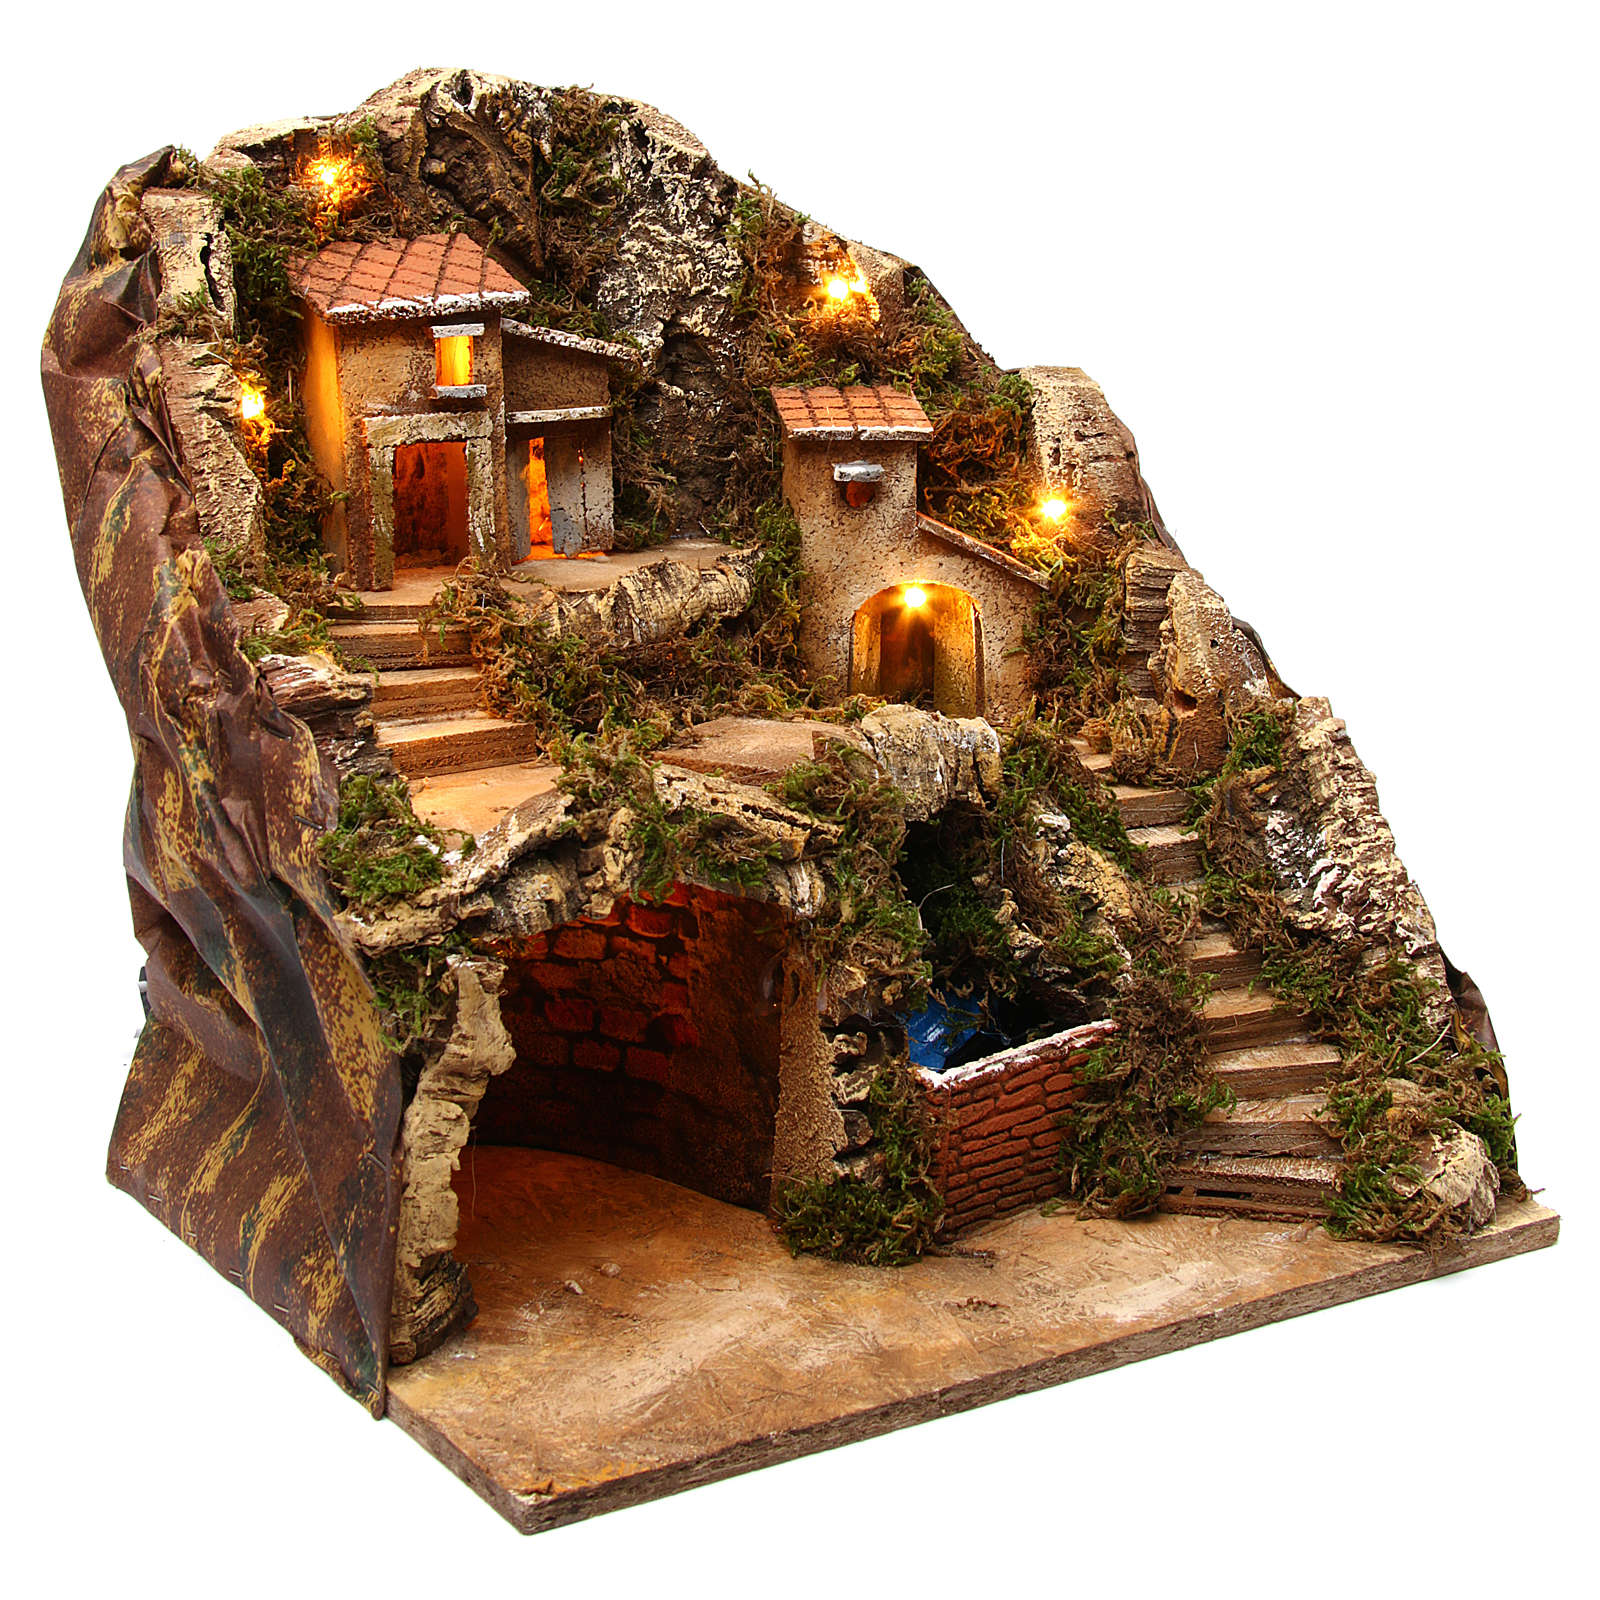 Village with water stream 40x30x40 cm Nativity Scene 8-10 cm 4